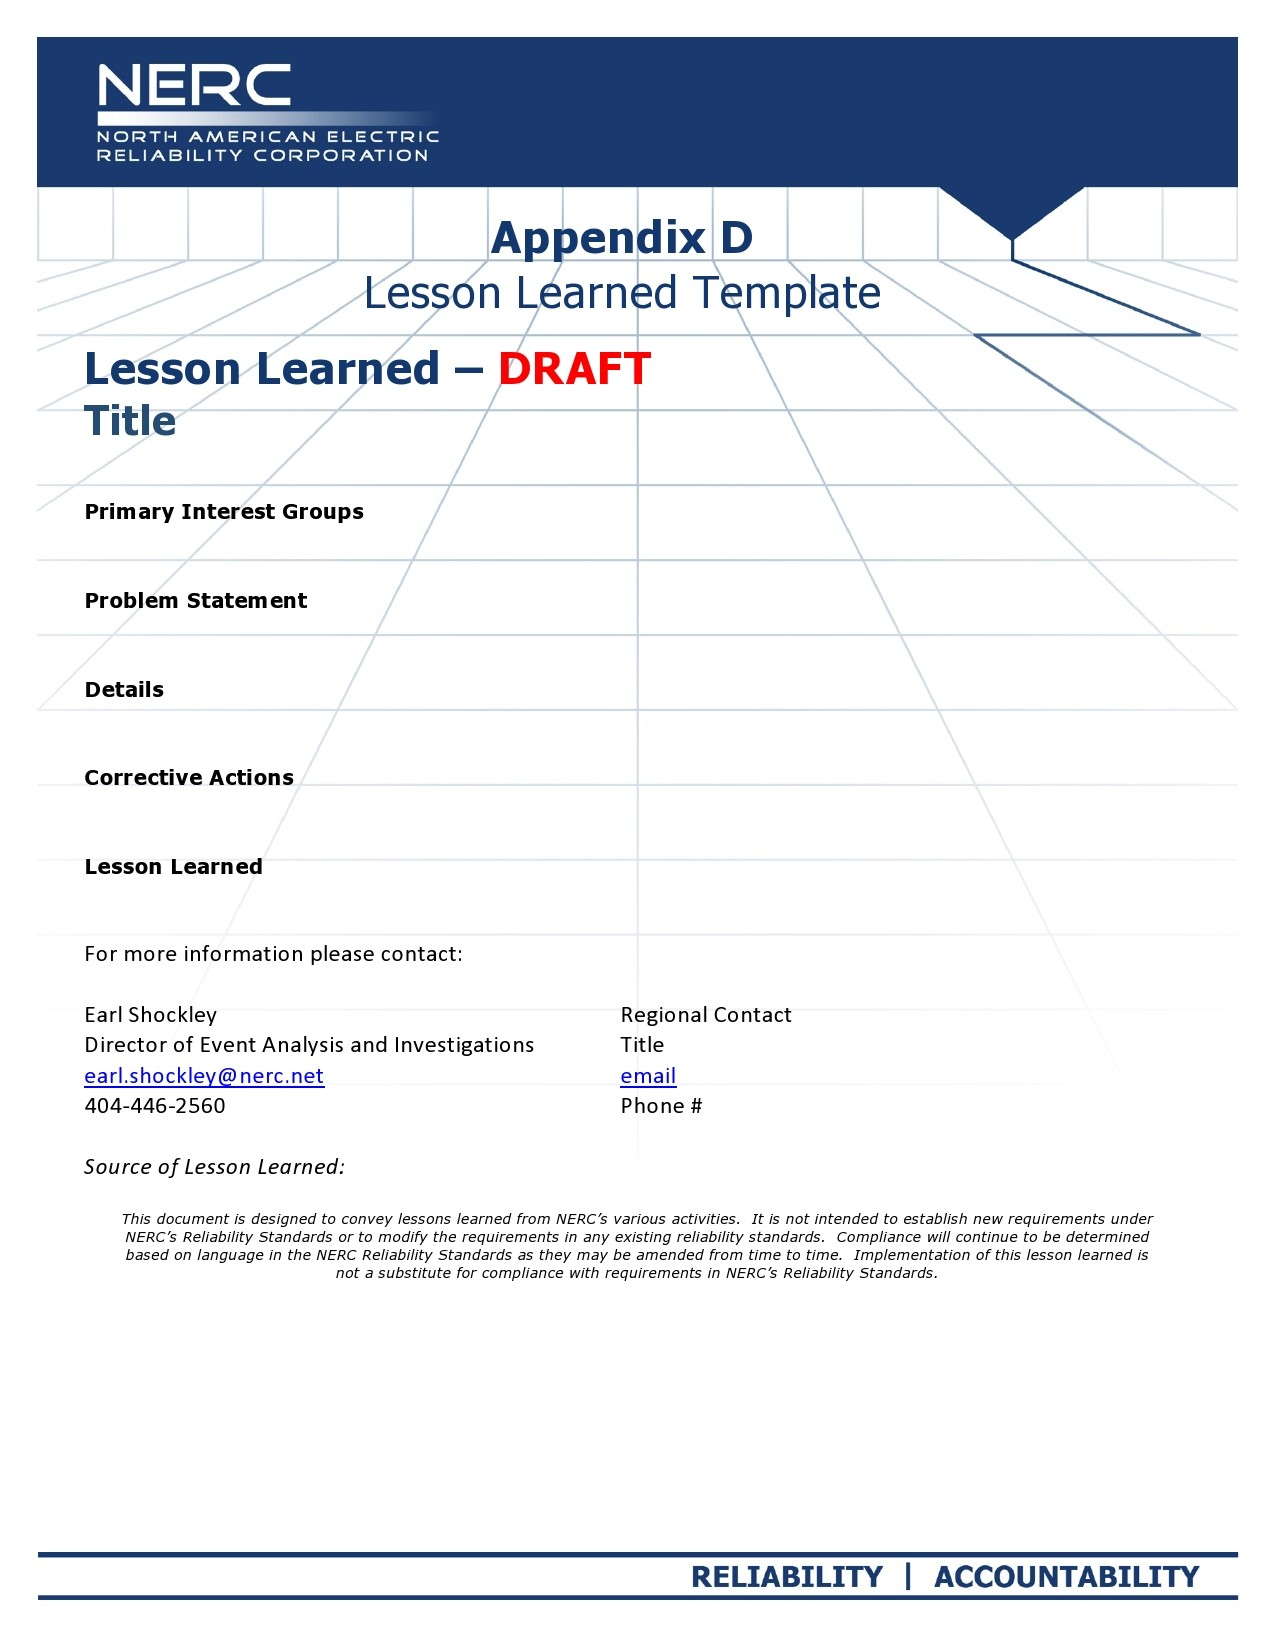 Free lessons learned template 02